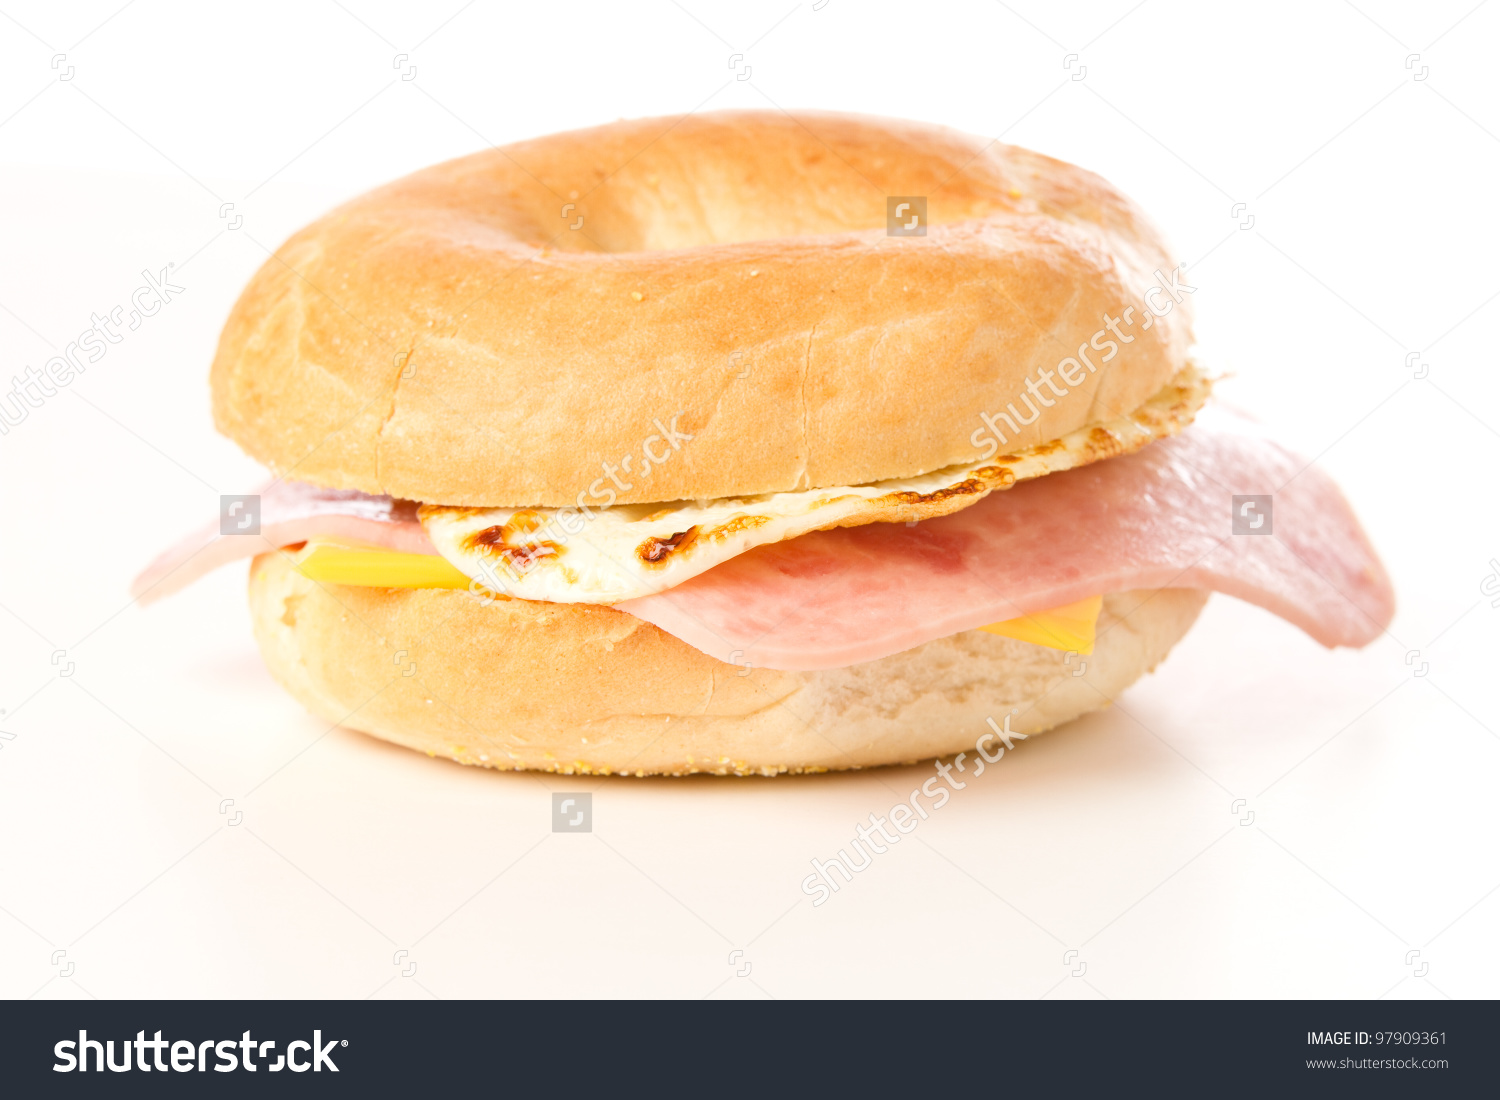 Egg Sandwich This Photo Delicious Egg Stock Photo 97909361.